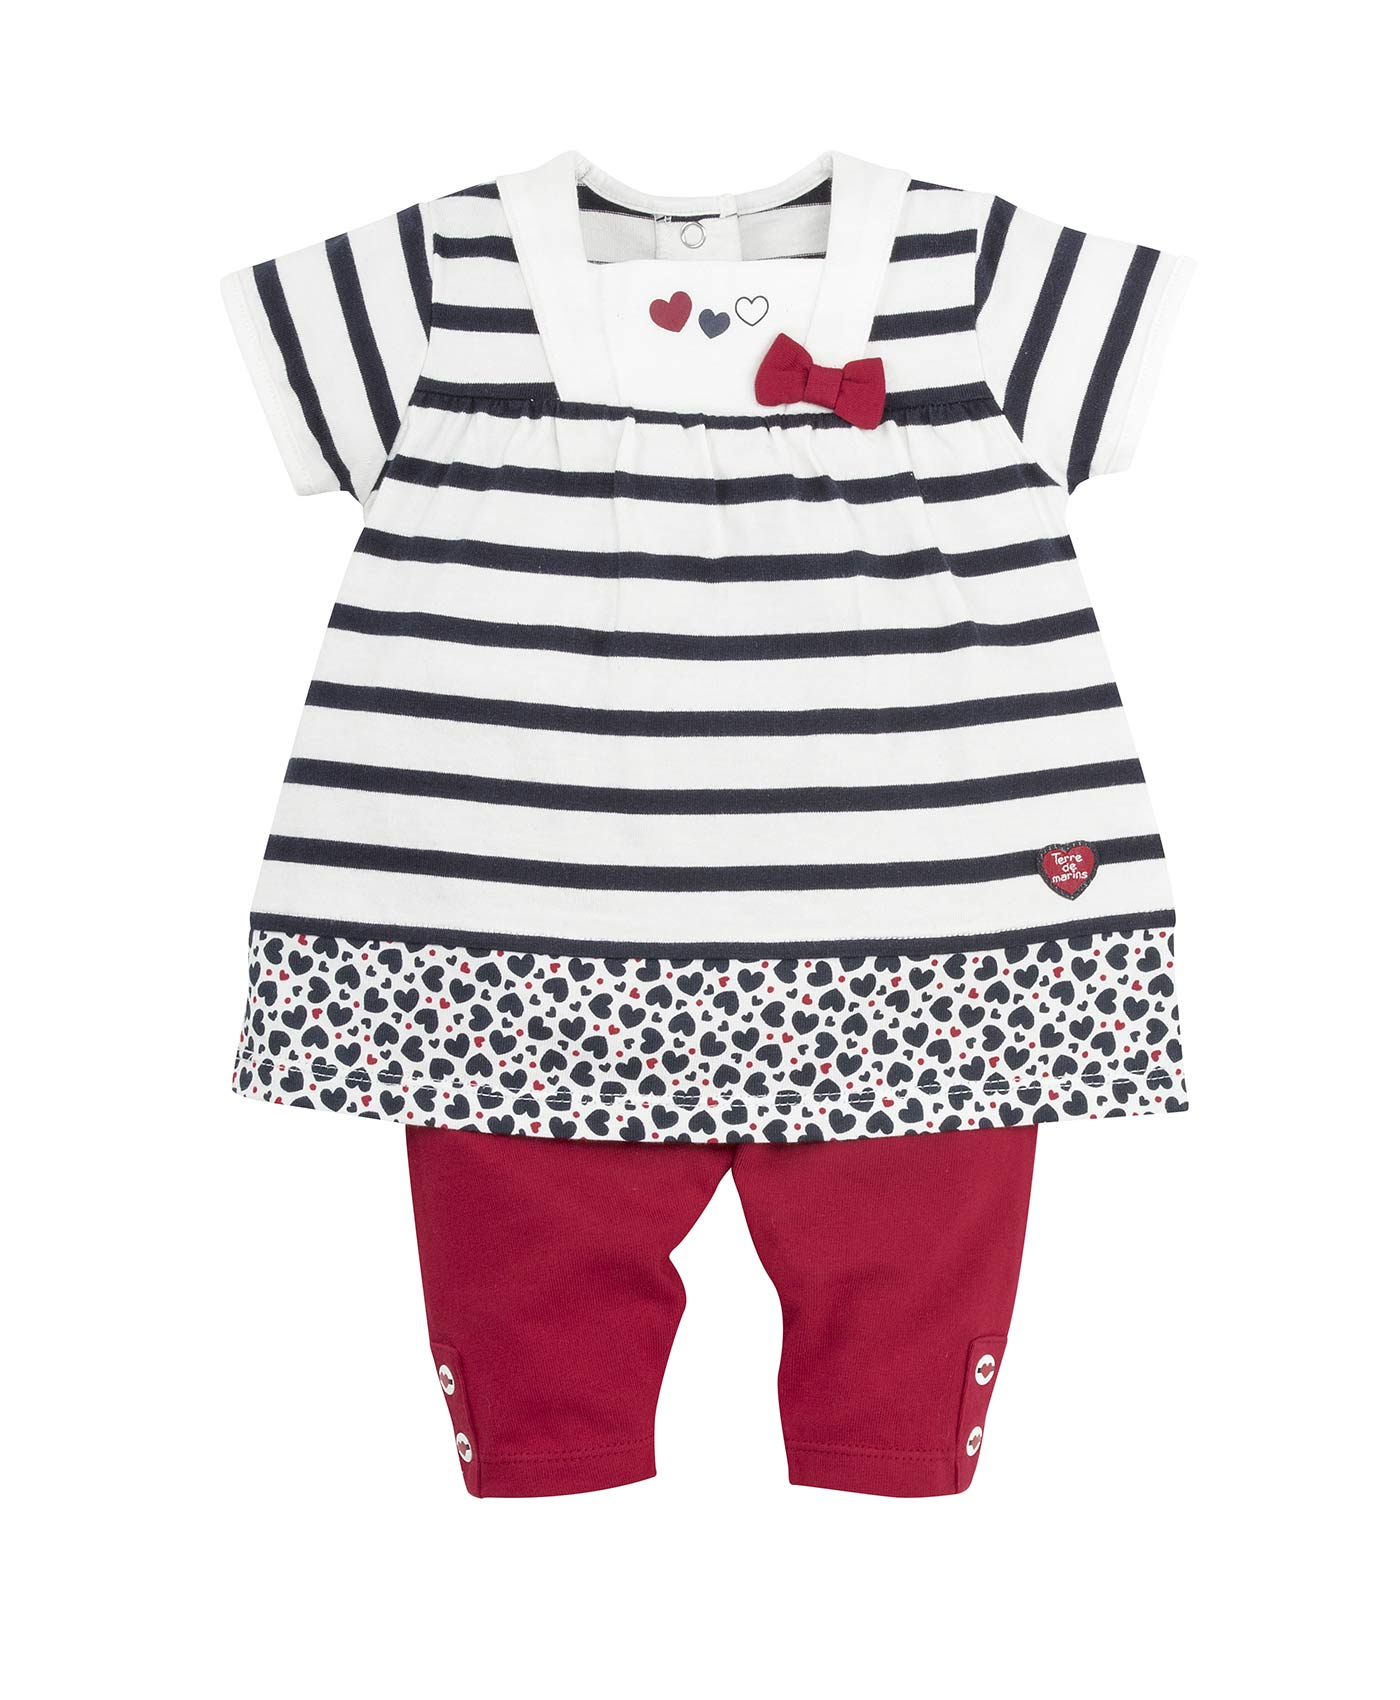 Tunique + leggings bébé fille rayé - Mode marine Destockage